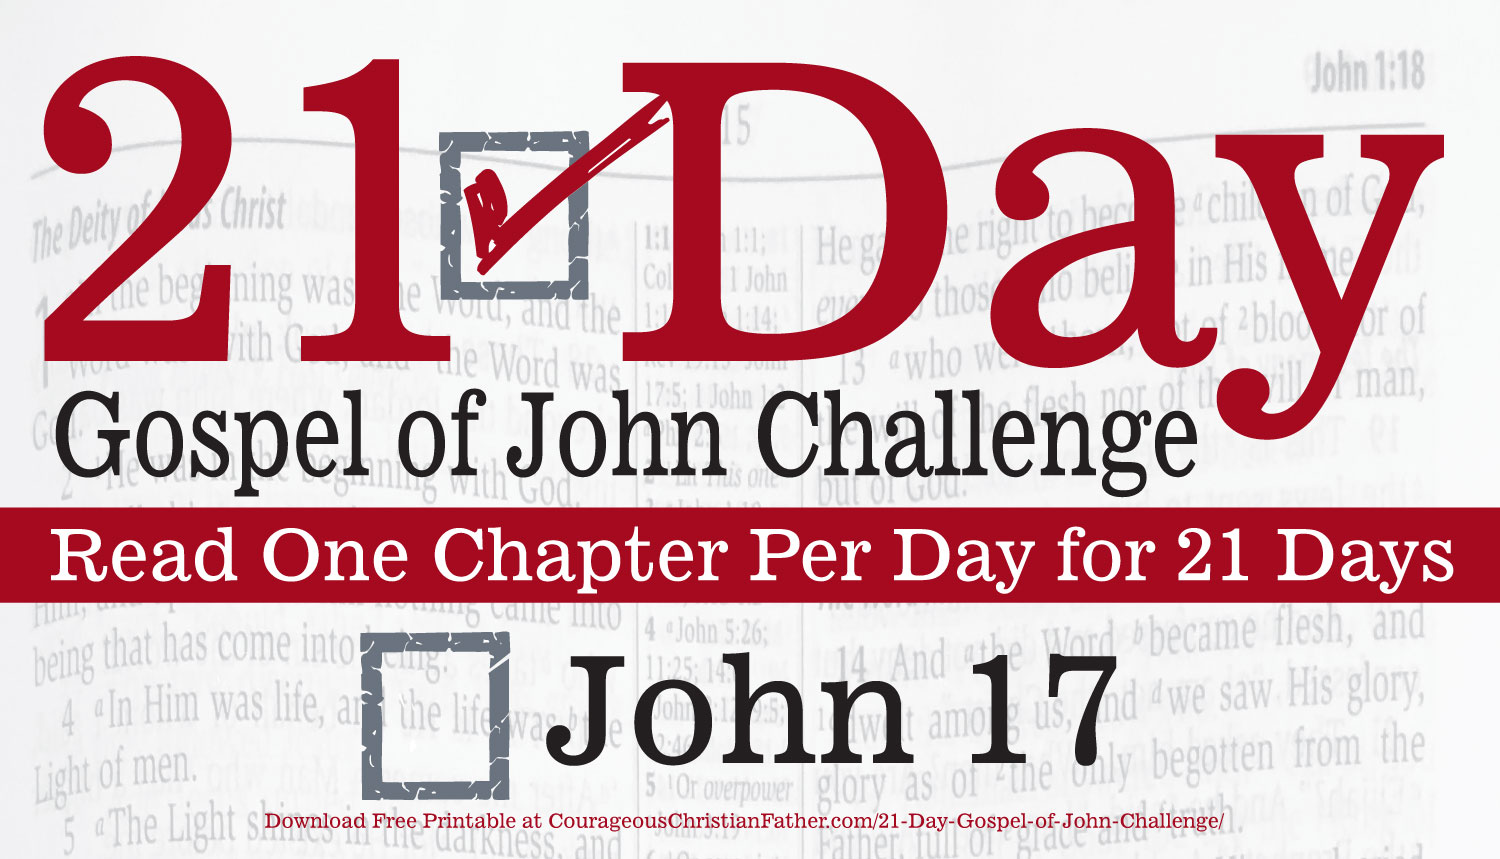 John 17 - Today is Day 17 of the 21 Day Gospel of John Challenge. Today read the 17th Chapter of the Gospel of John. #John17 #BGBG2